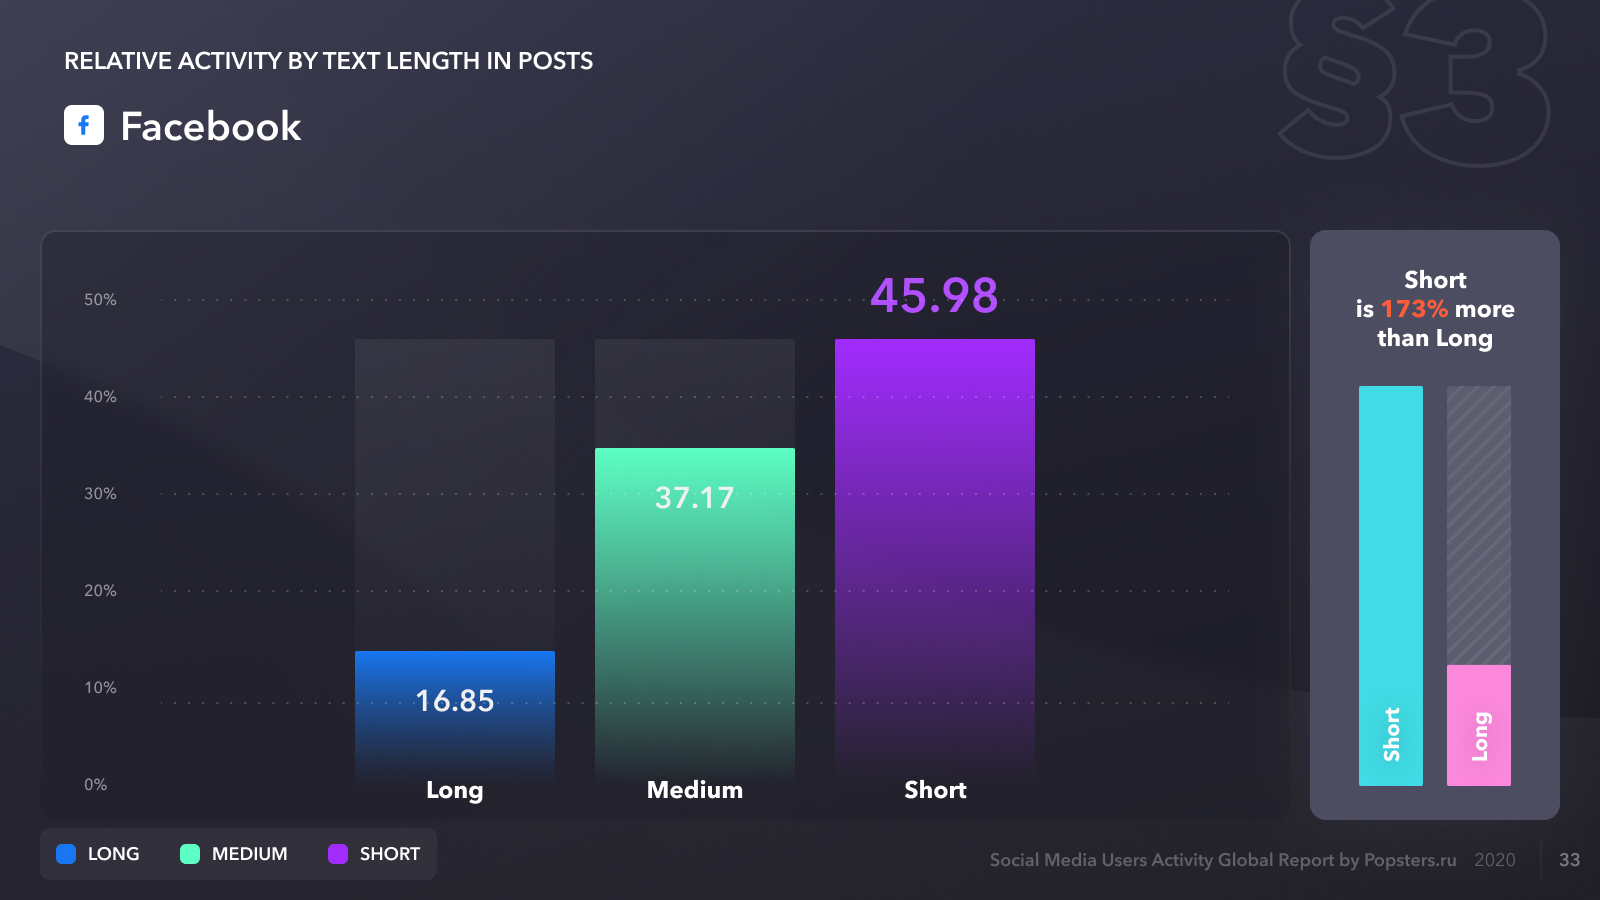 Relative activity on Facebook by text length in posts, for 2020